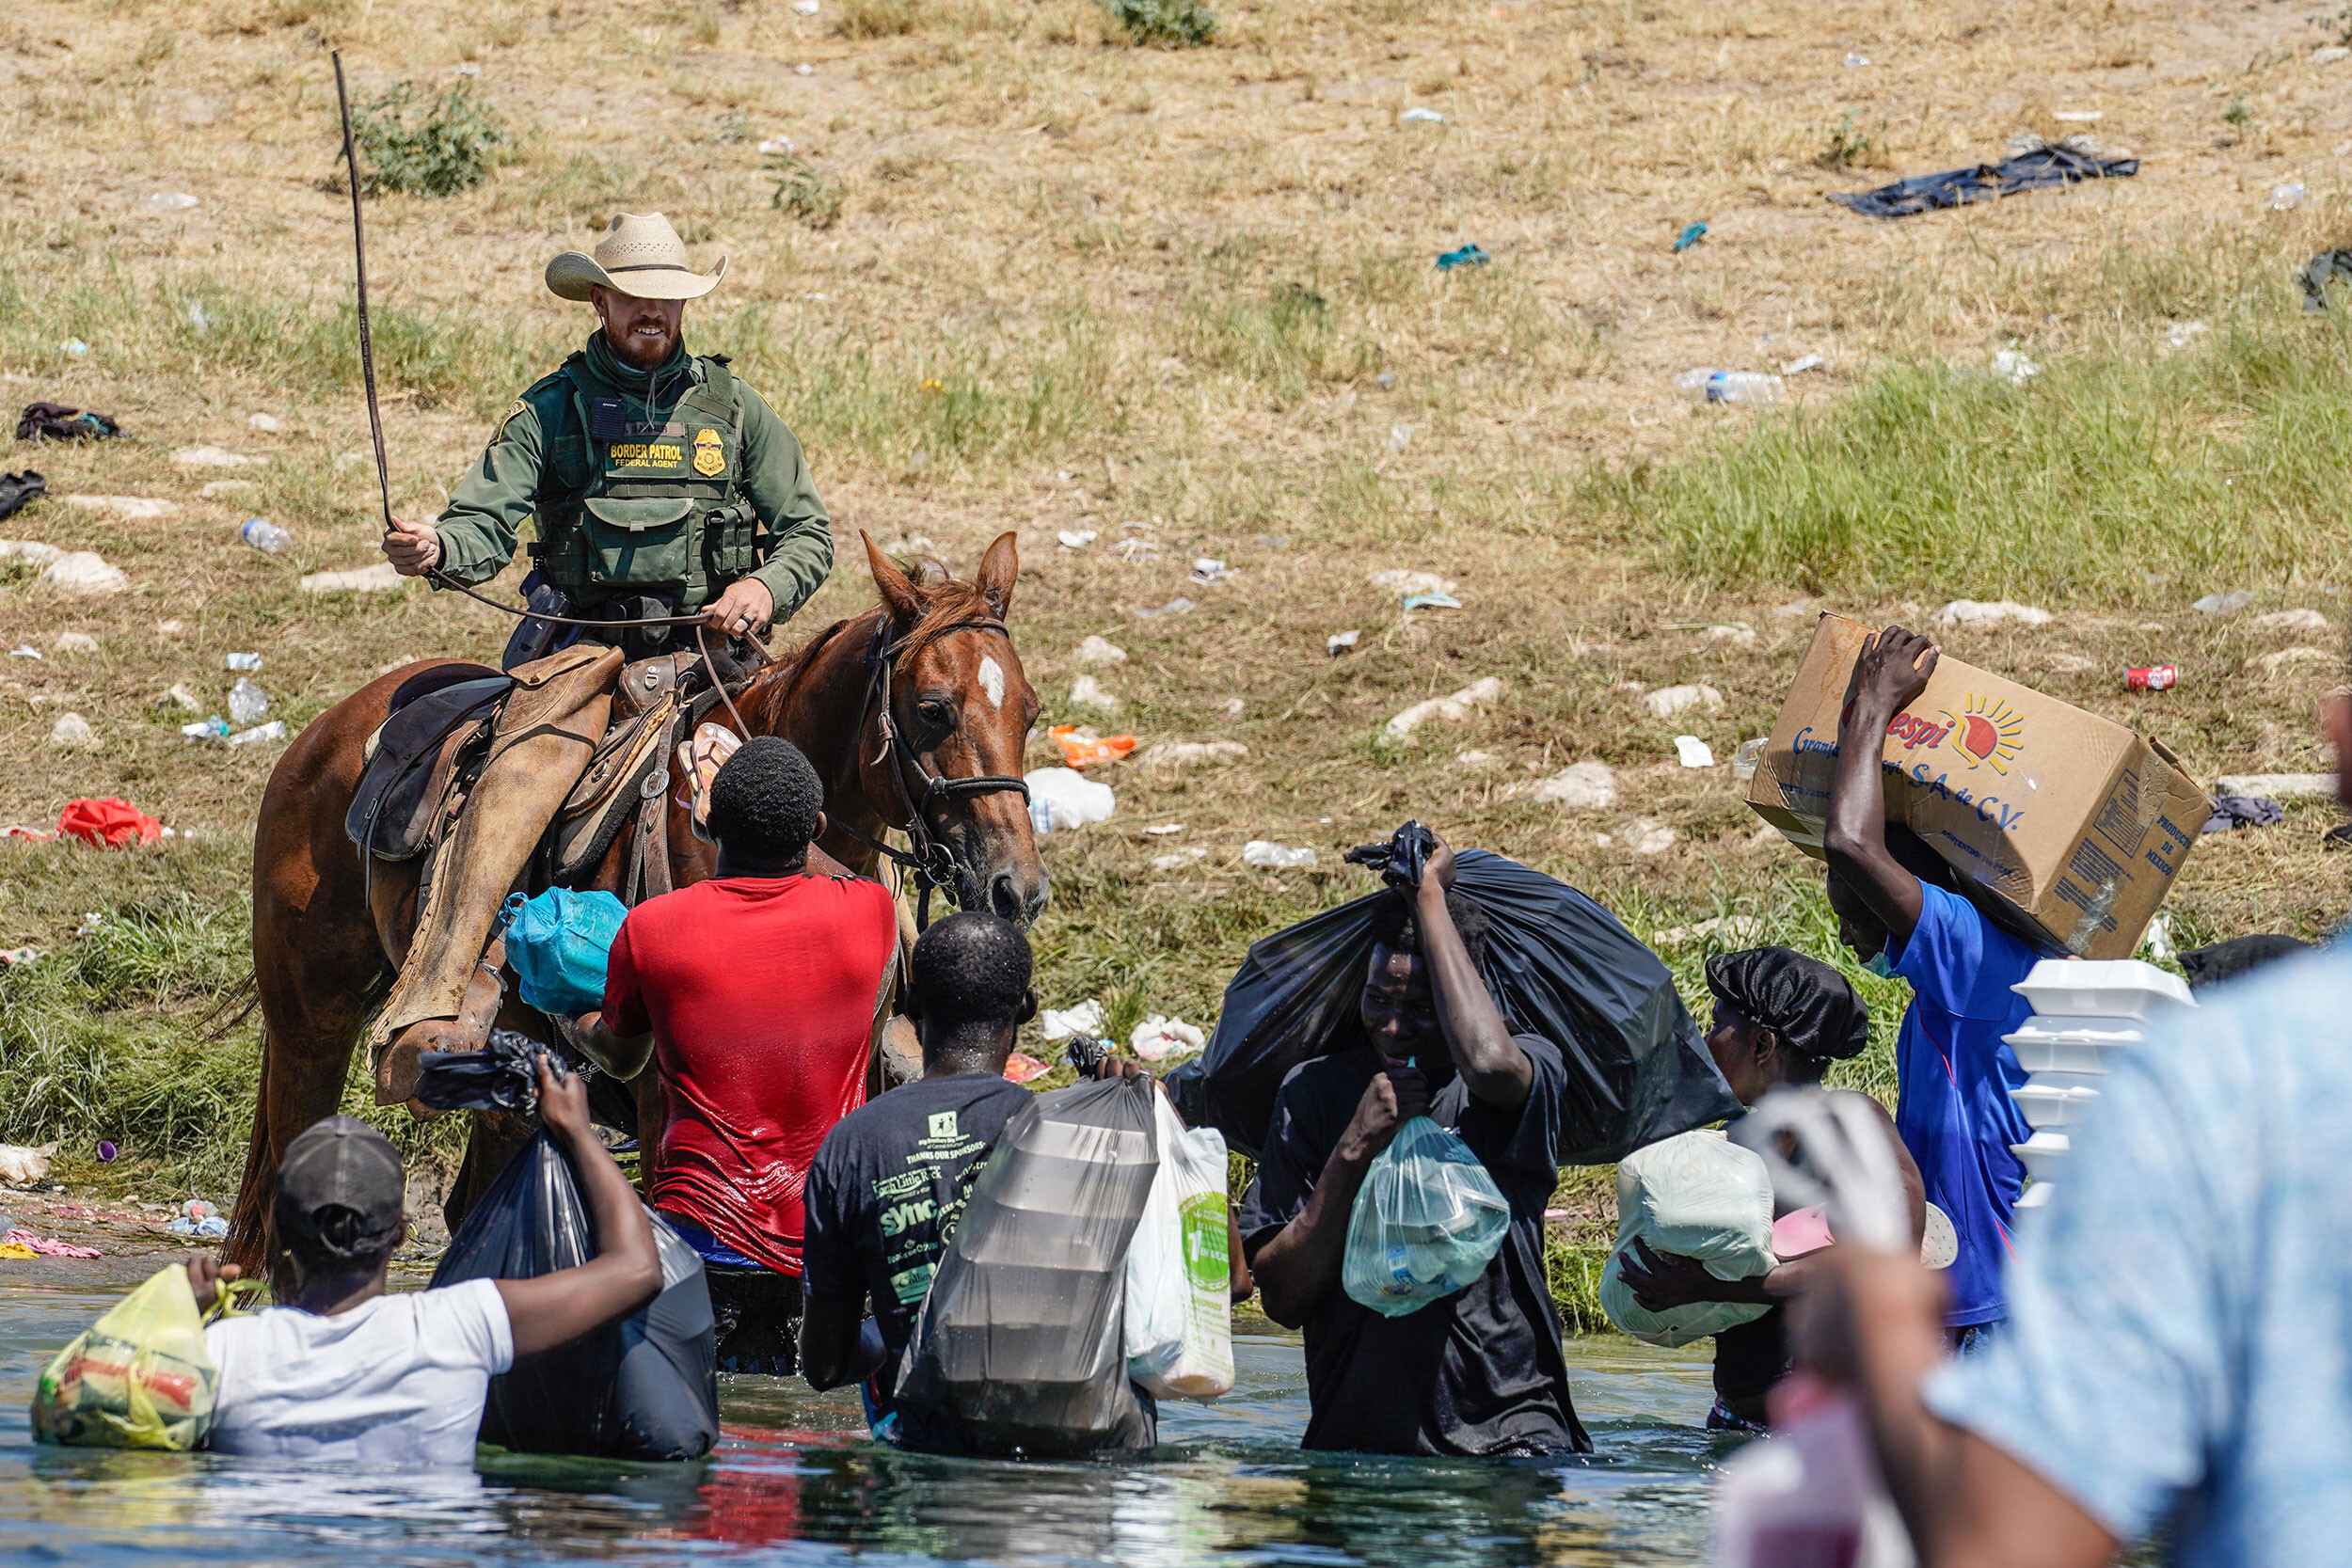 <i>Paul Ratje/AFP/Getty Images</i><br/>A United States Border Patrol agent on horseback uses the reins as he tries to stop Haitian migrants from entering an encampment. The DHS has since temporarily suspended the use of horse patrol.